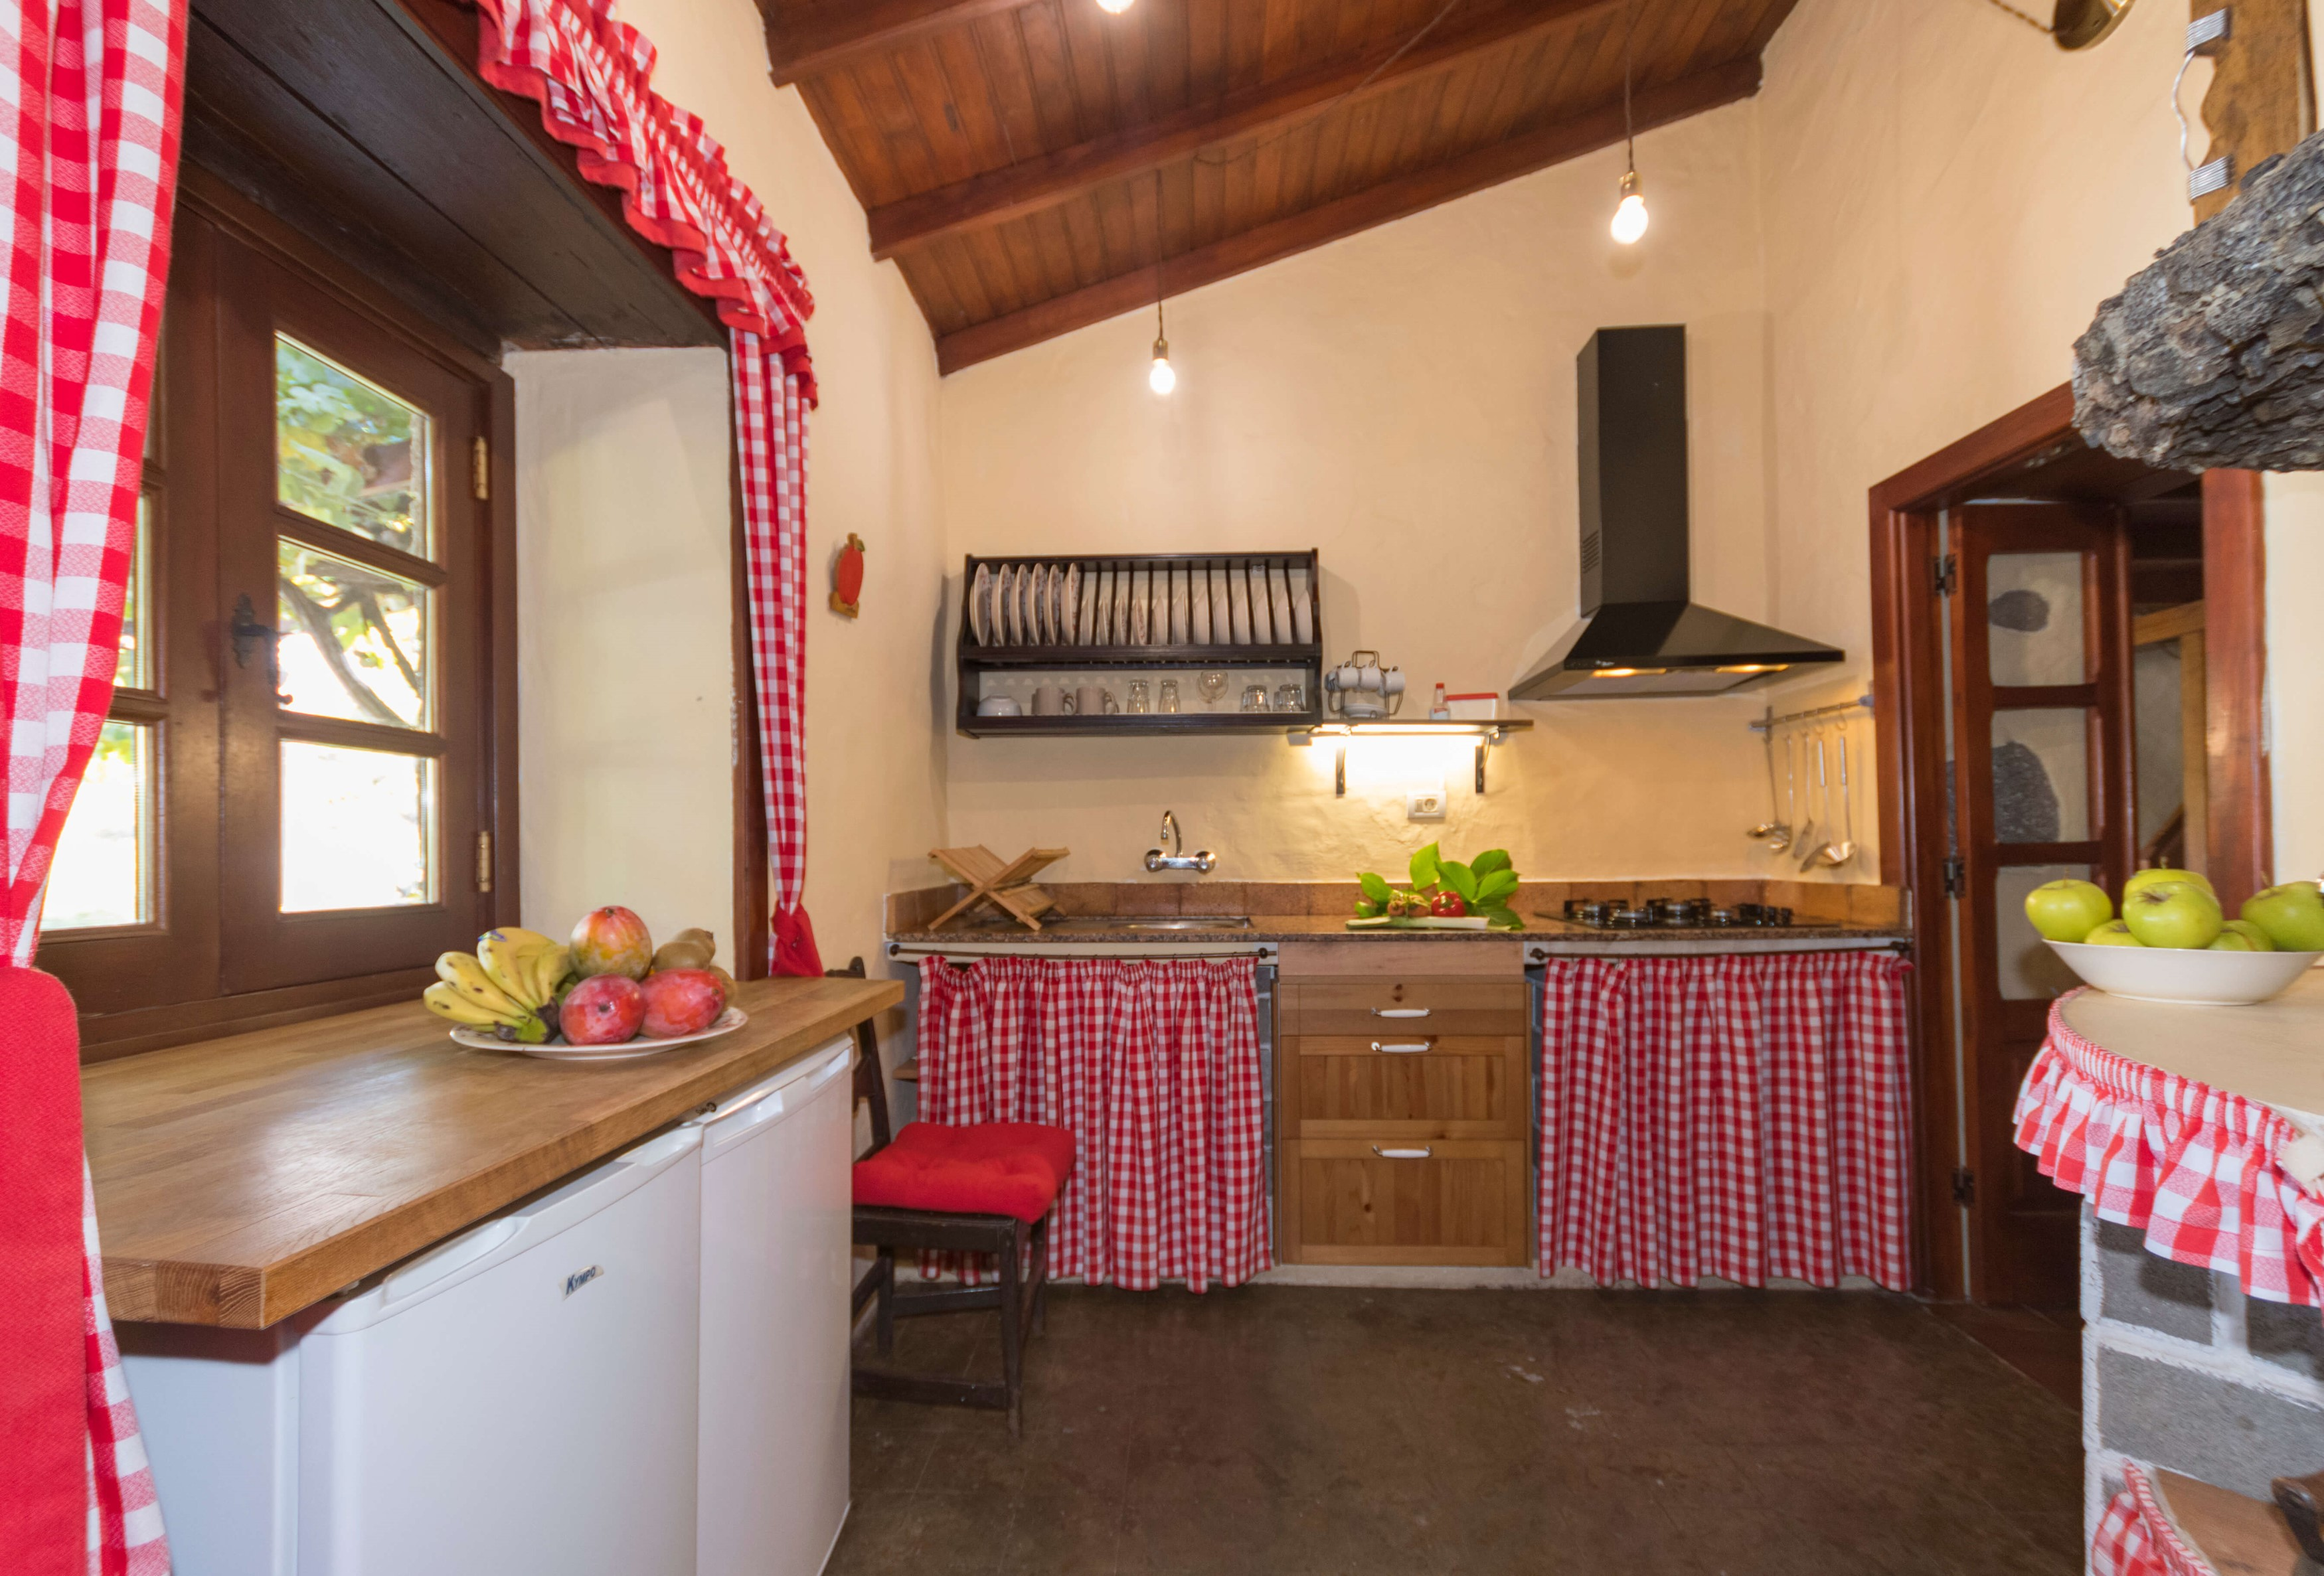 Maison de vacances House - 2 Bedrooms with Pool and WiFi - 106781 (2742990), San Fernando, Grande Canarie, Iles Canaries, Espagne, image 14